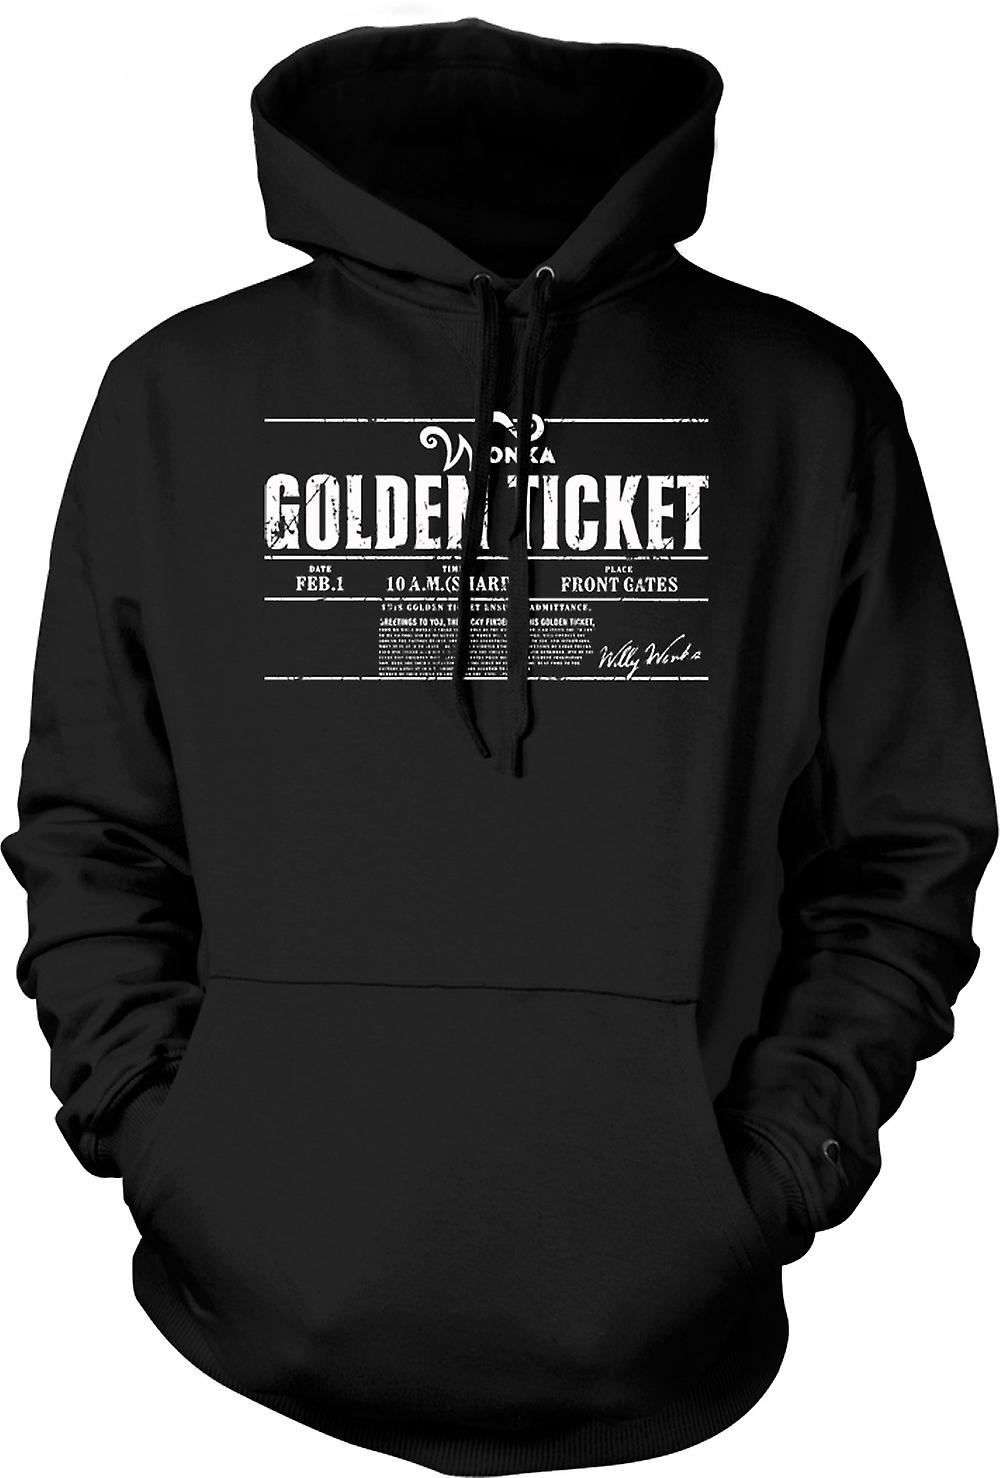 Mens Hoodie - Willy Wonkas Ticket - film - BW - Funny